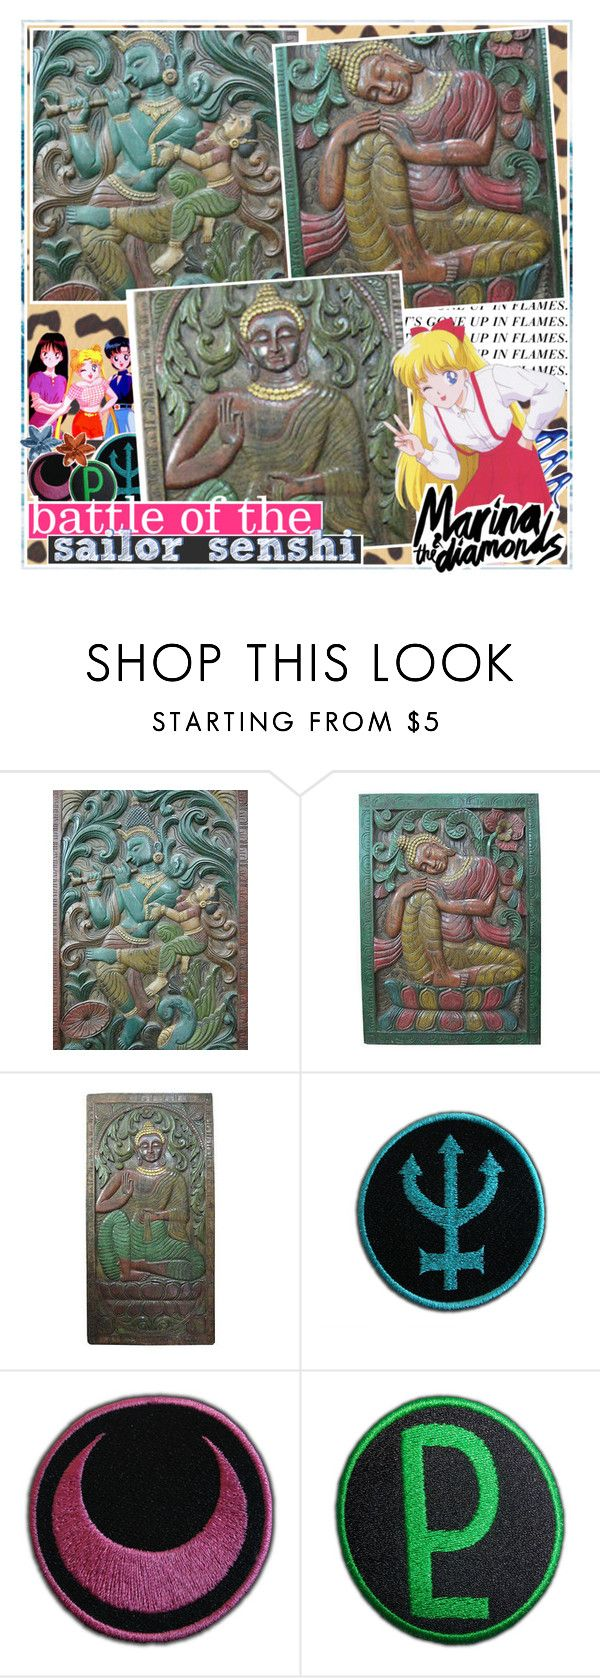 Antique Home Decor Wall Panel by baydeals on Polyvore featuring vintage  http://stores.ebay.com/mogulgallery/CARVED-DOORS-/_i.html?_fsub=353415319&_sid=3781319&_trksid=p4634.c0.m322